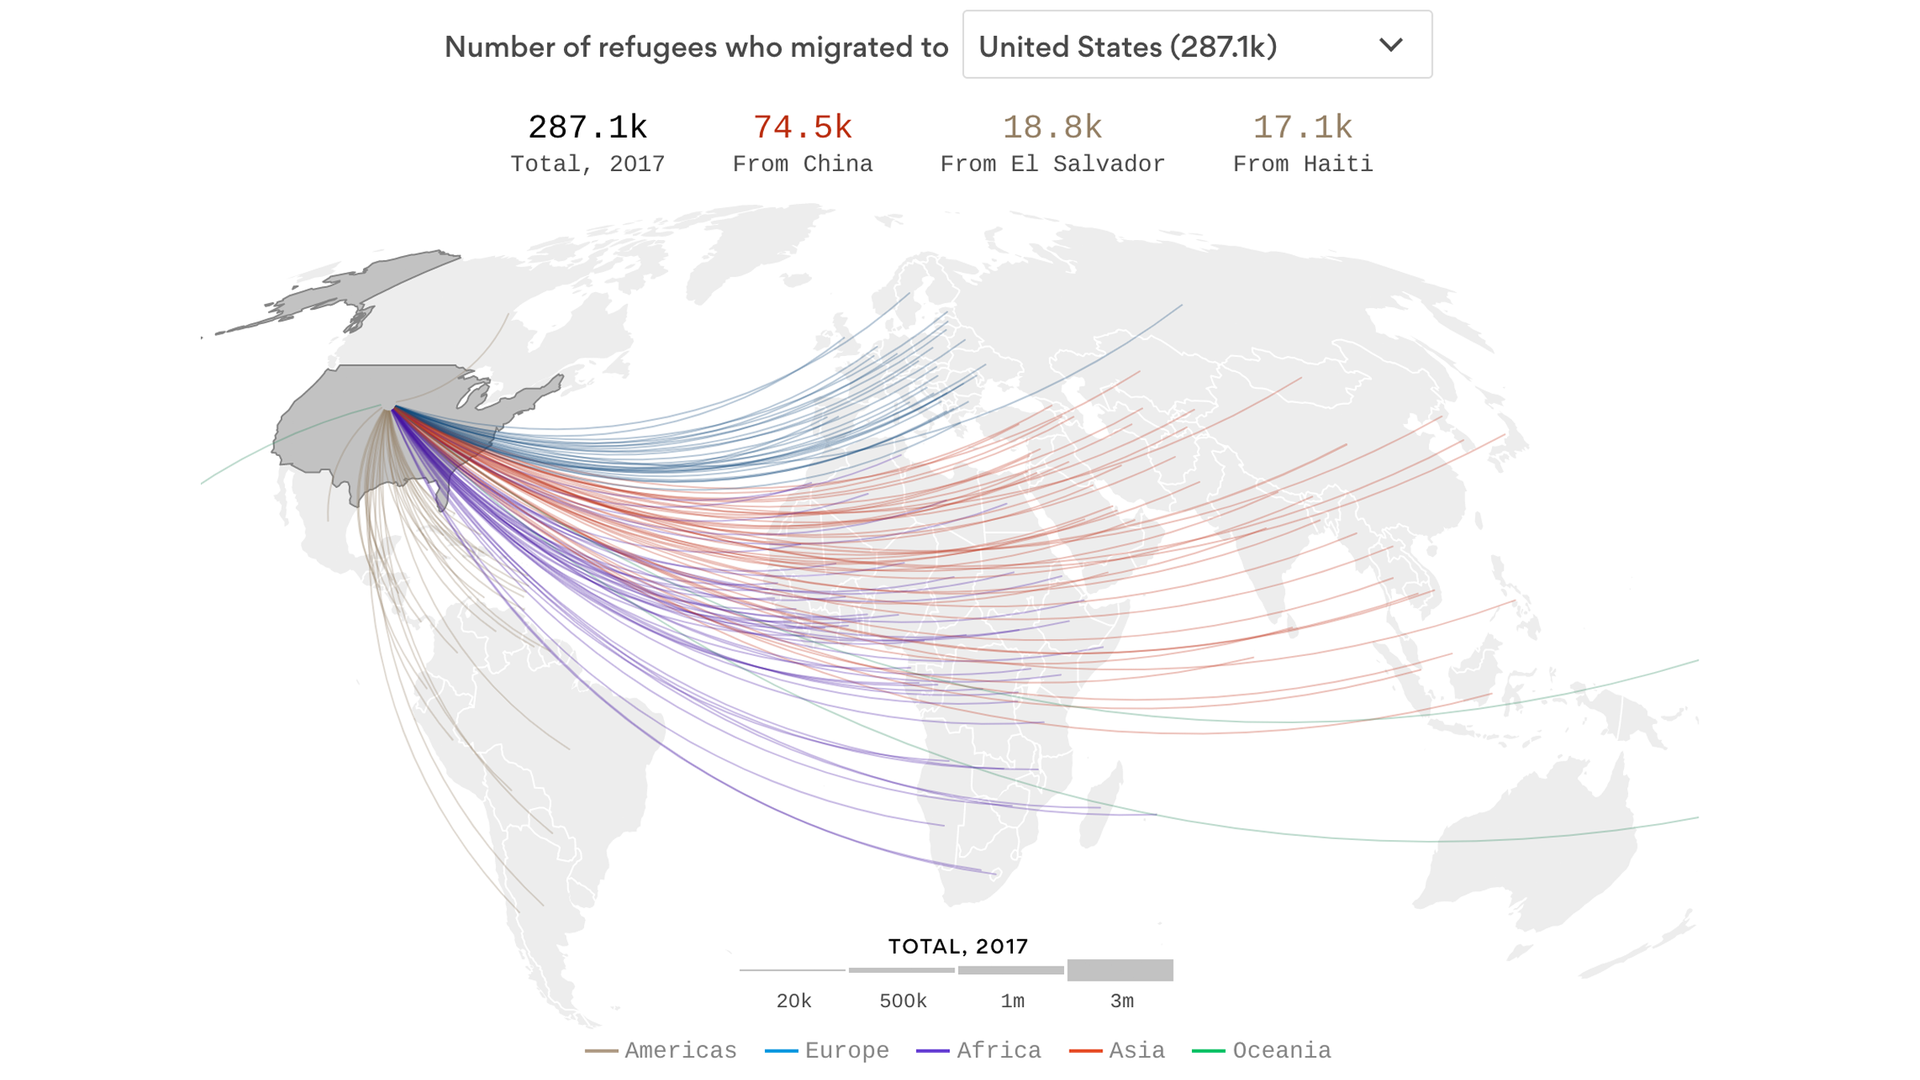 Developing nations are carrying the refugee load